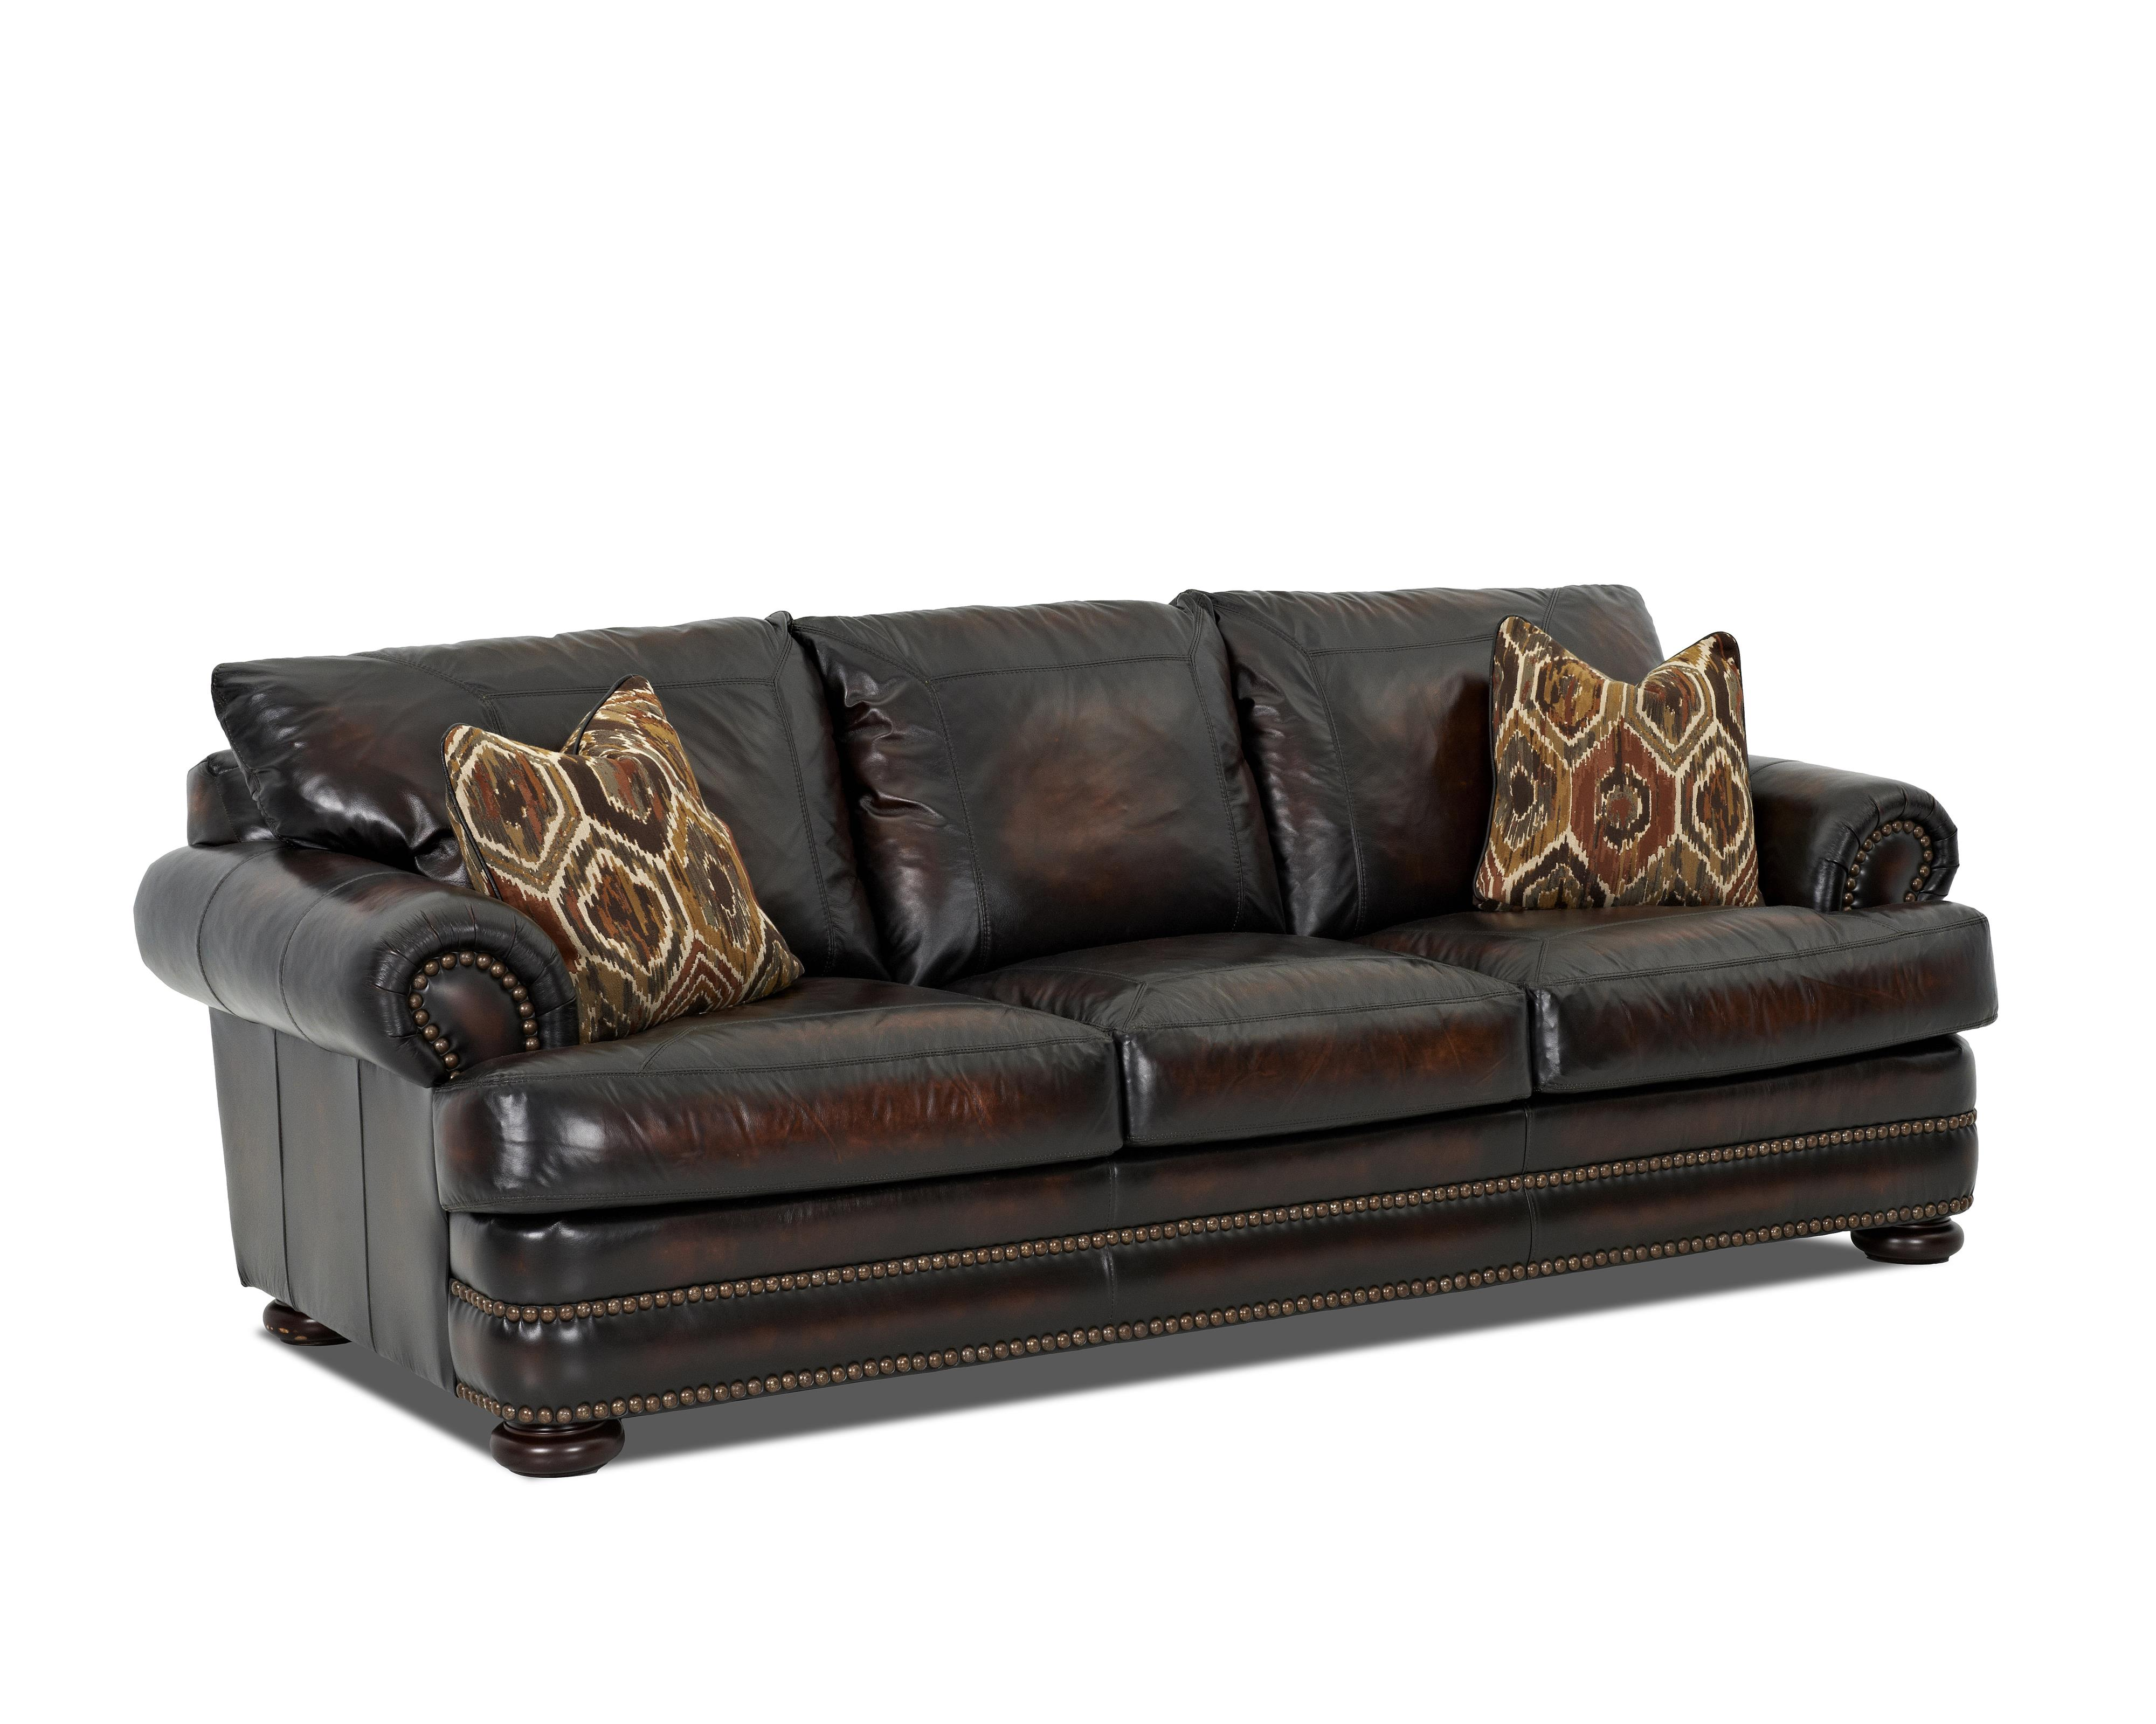 klaussner sofa and loveseat set bellanest leather montezuma with rolled arms value